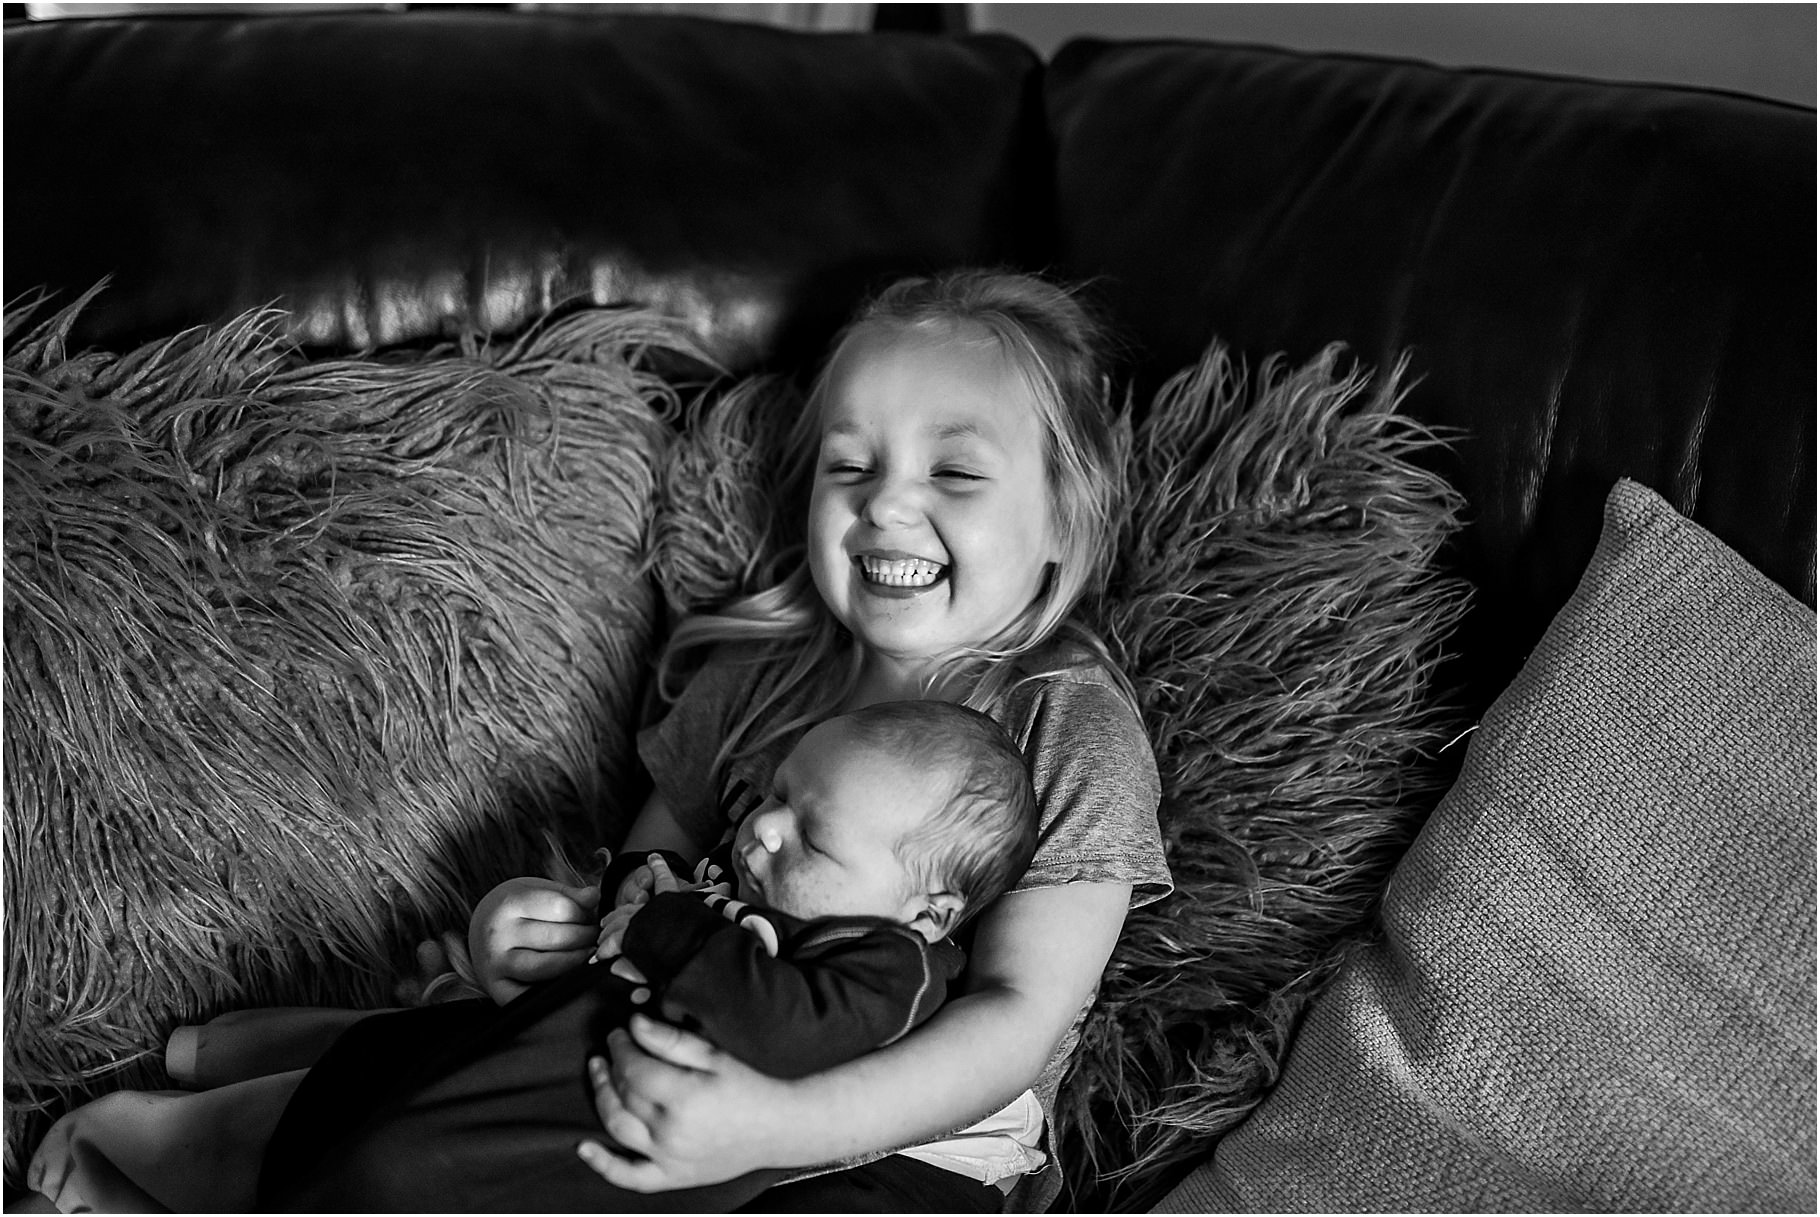 lancashire-family-portraits-documentary-newborn-21.jpg